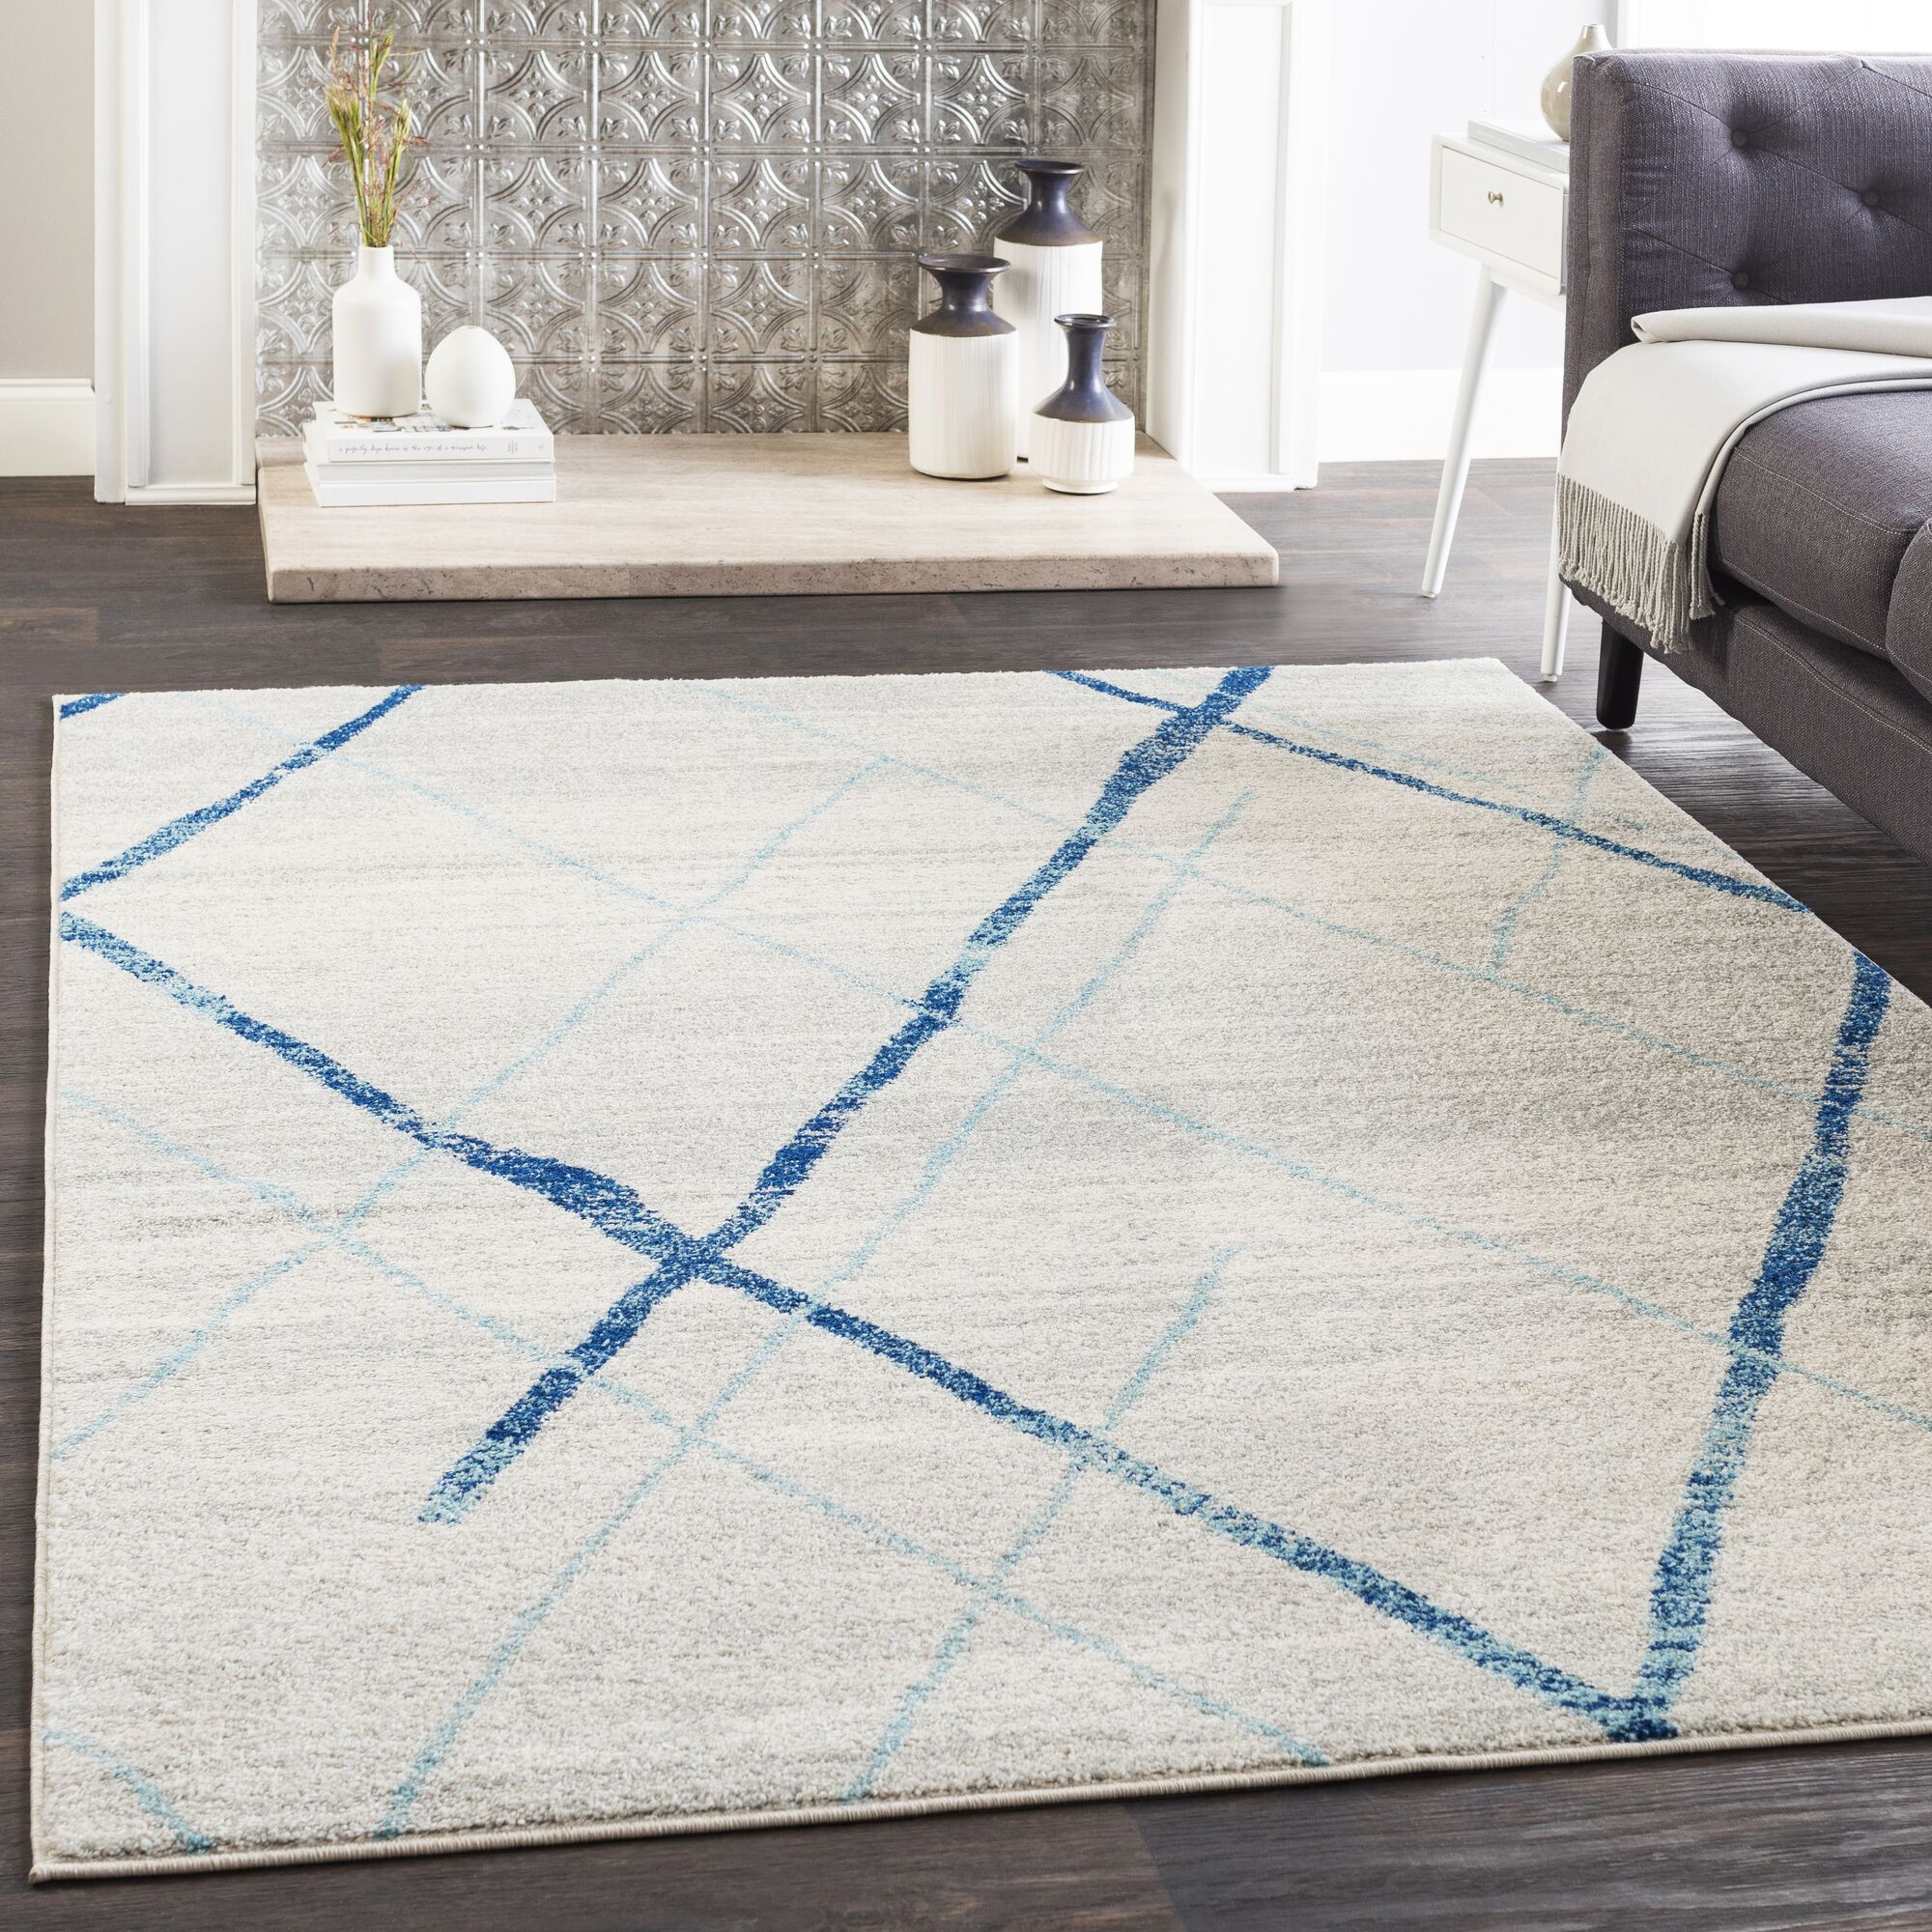 Kreutzer Distressed Navy/Light Blue Area Rug Rug Size: Rectangle 7'10